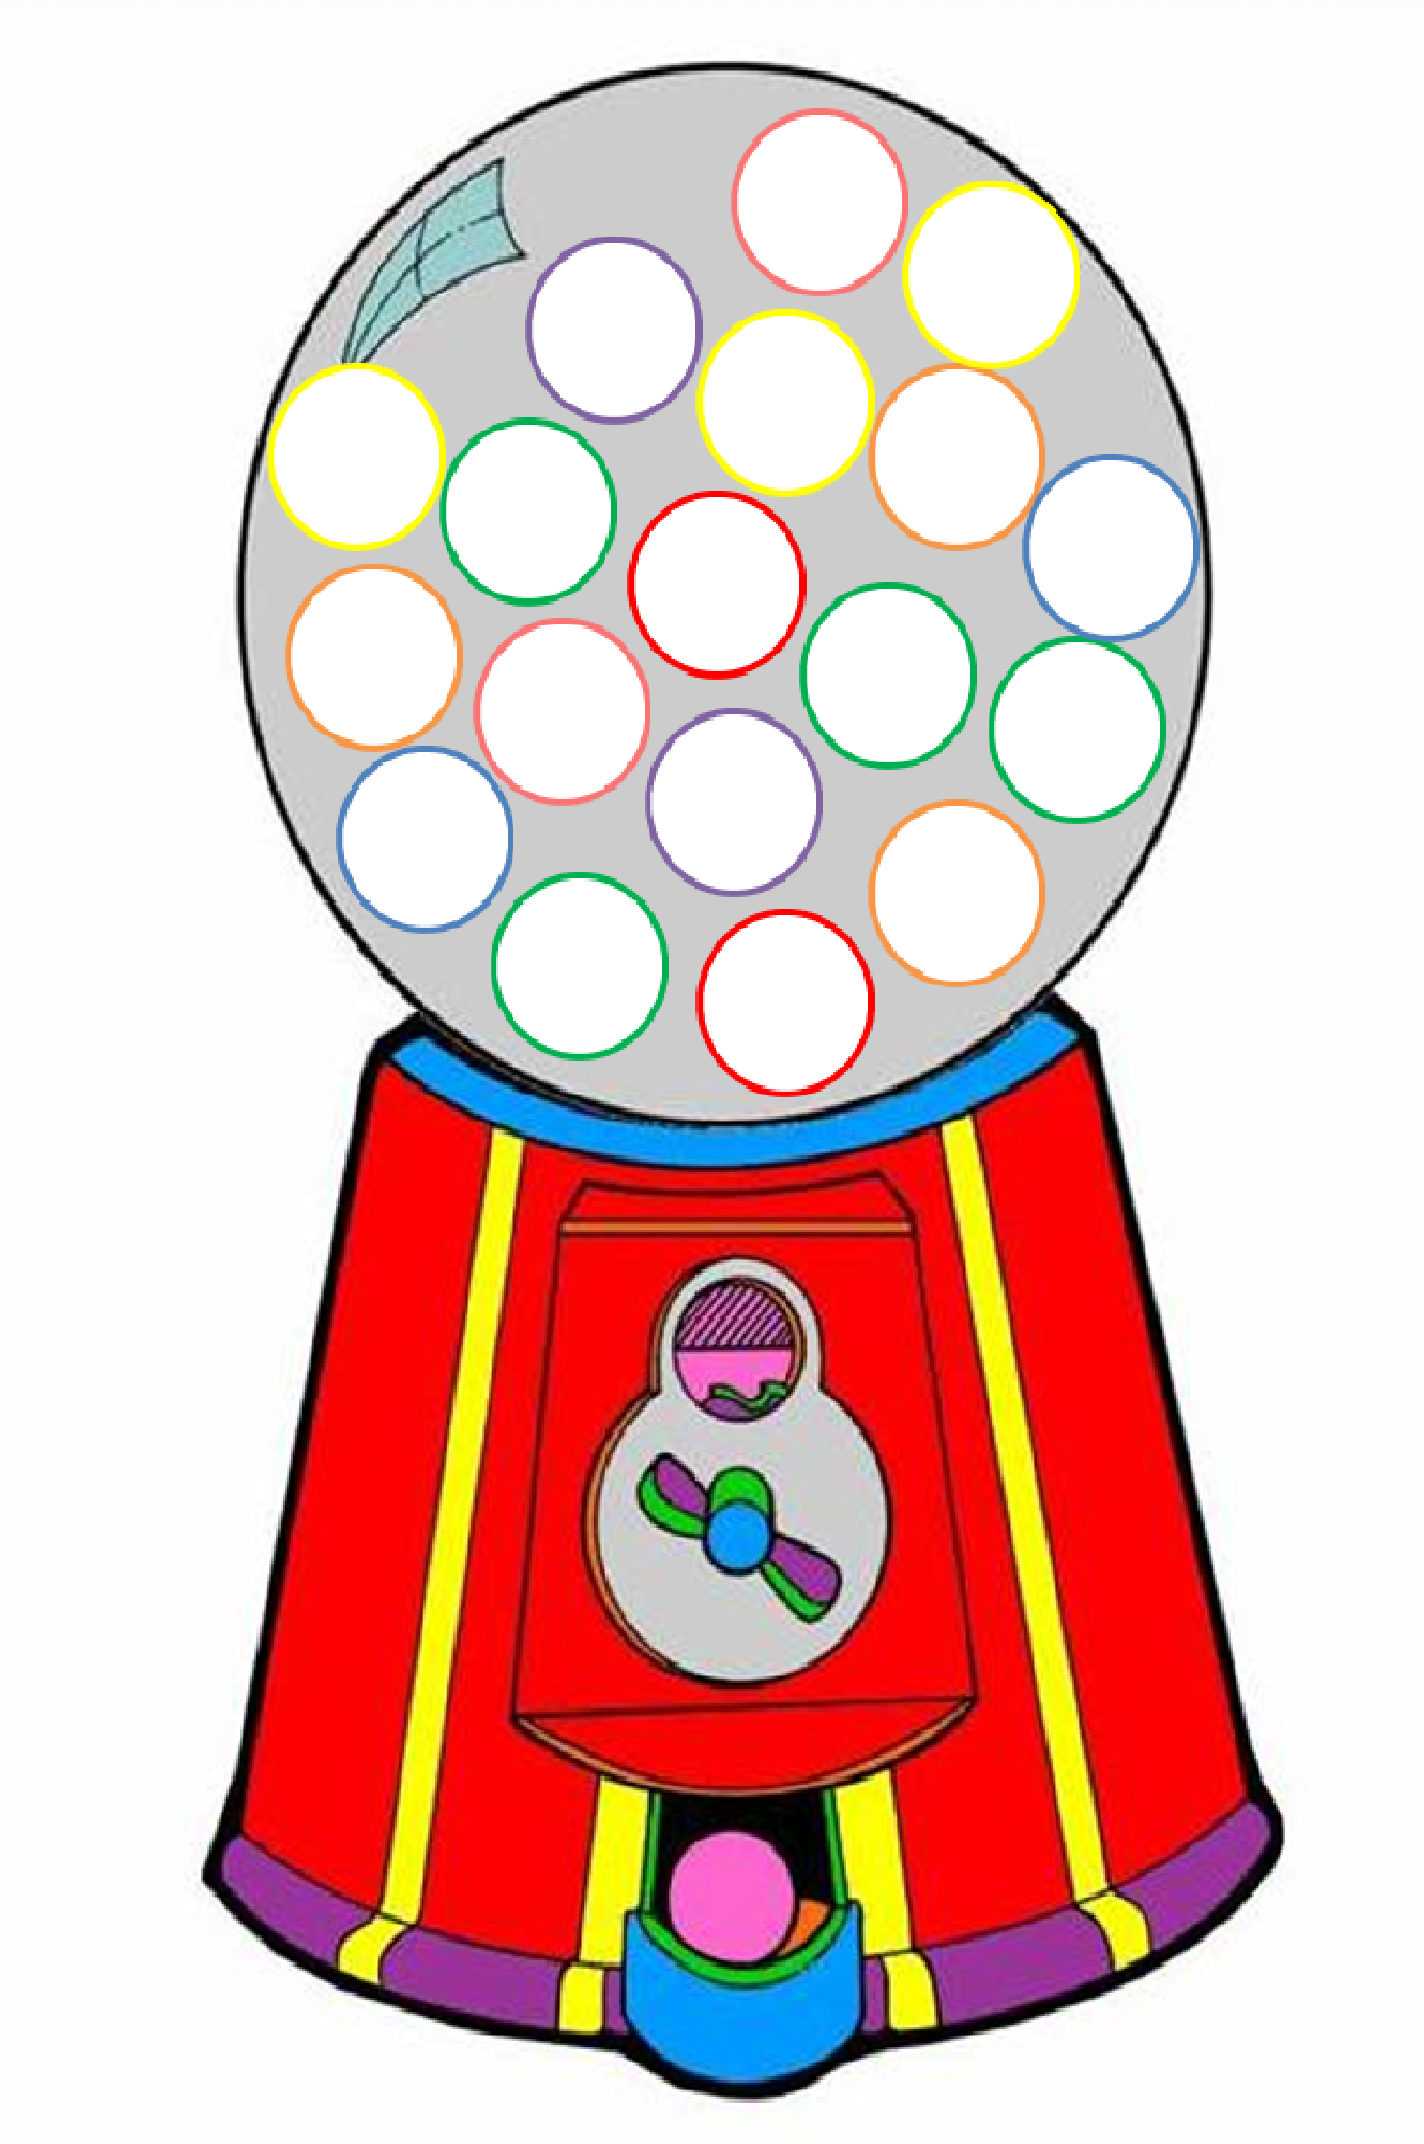 bubble gum machine clip art clipart panda free clipart images rh clipartpanda com Bubble Gum Clilpart Bubble Gum Graphics